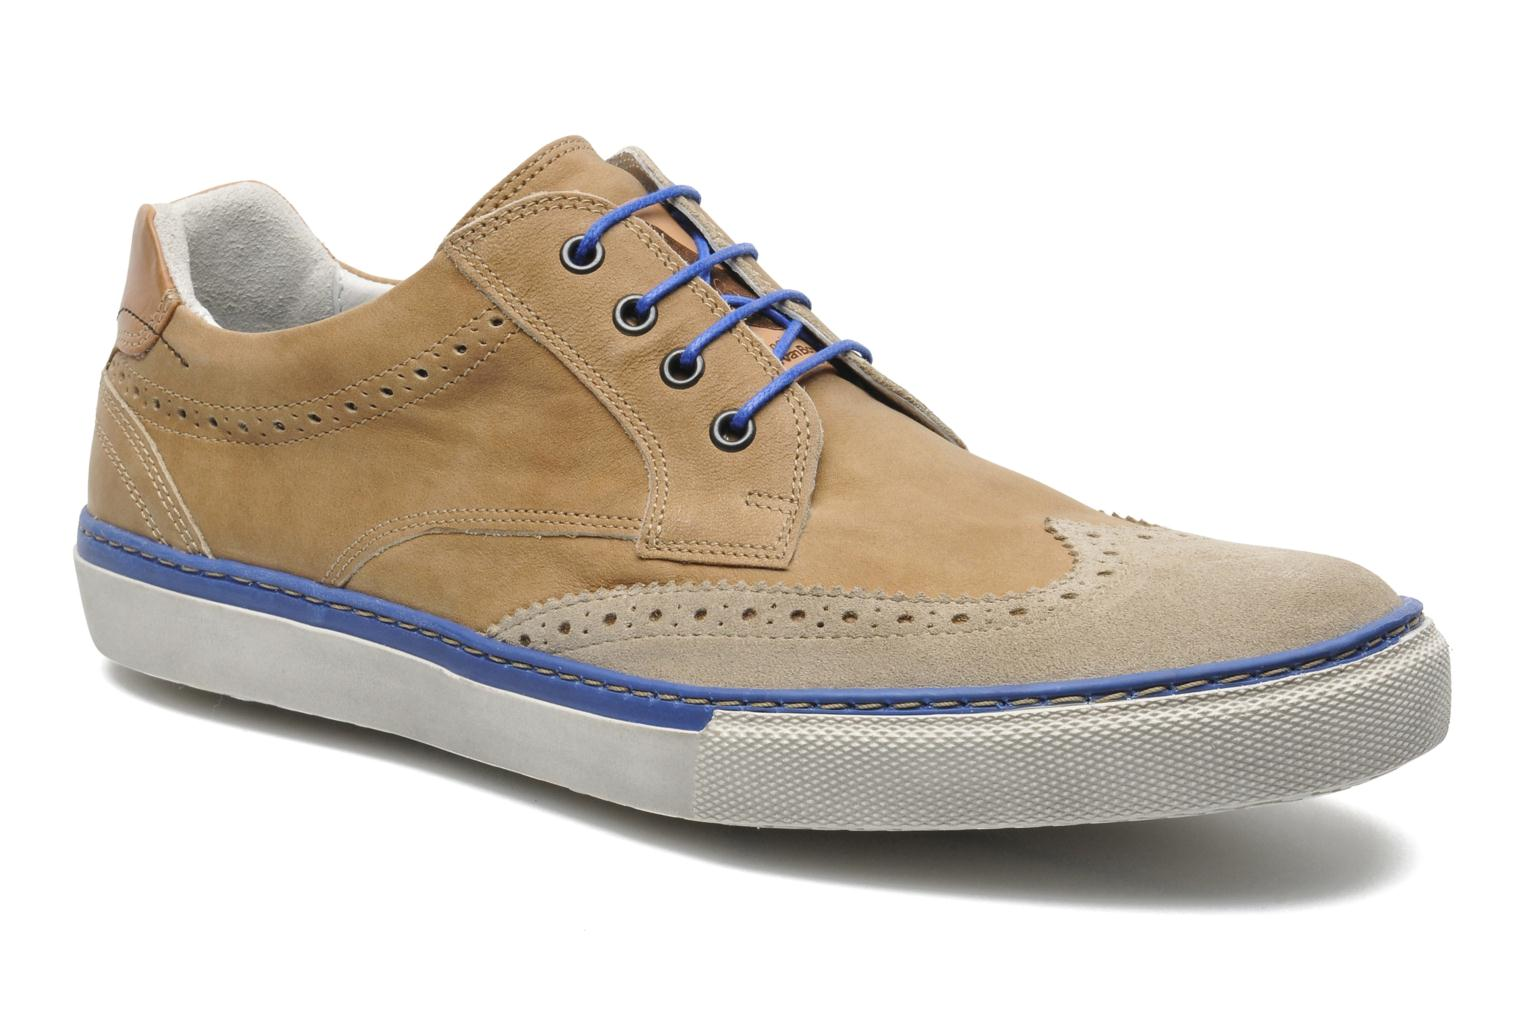 Sneakers Alfredo 17249 by Floris Van Bommel